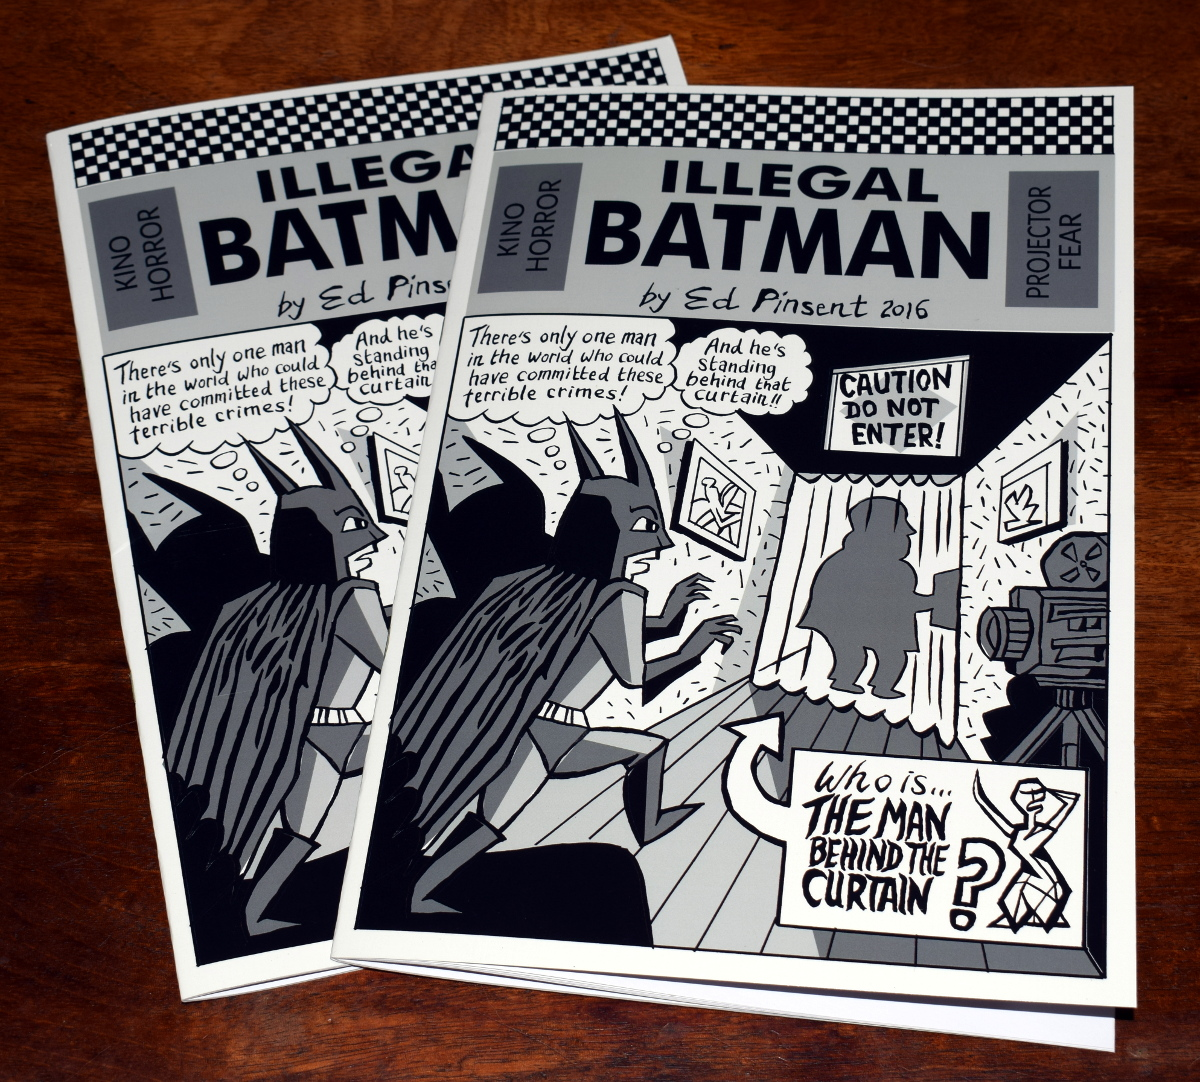 New Illegal Batman Comic